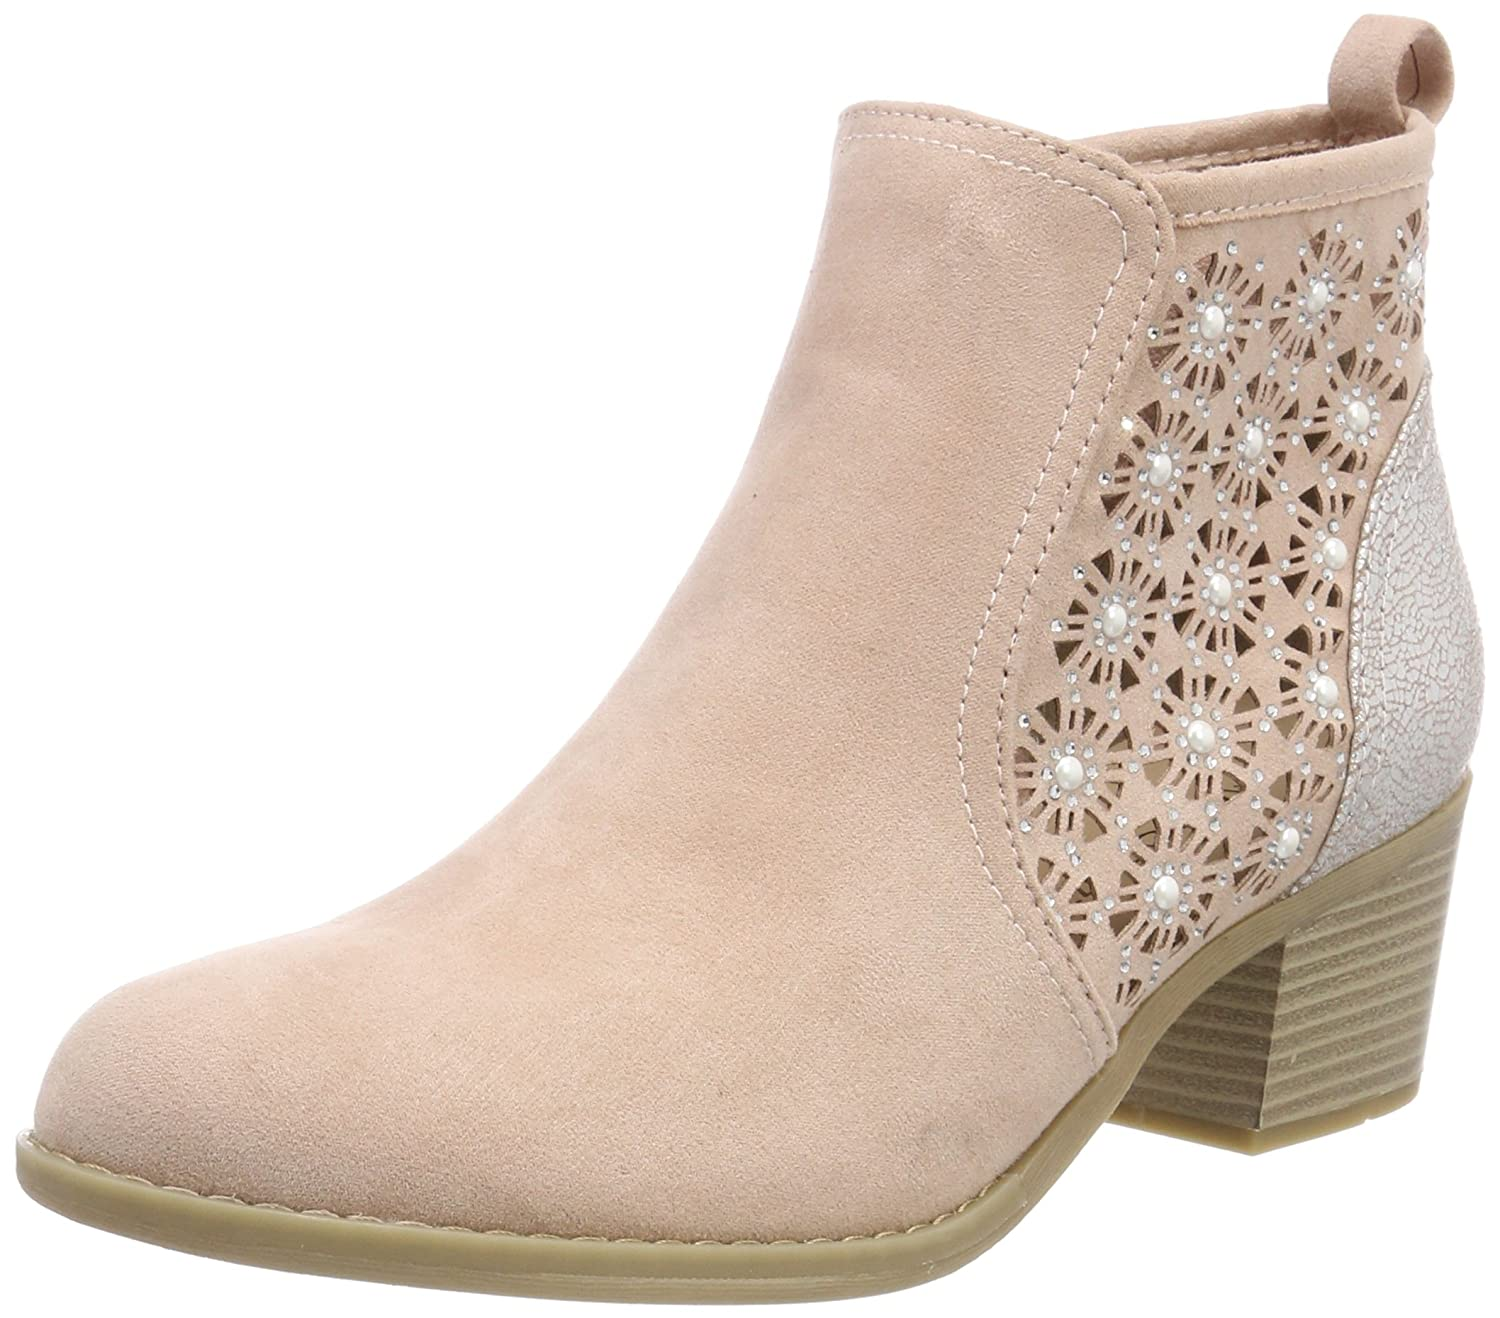 Marco Tozzi 25400, Botines (Rose Botines Femme, Dune Comb Rose (Rose Comb Comb) 71bec8a - reprogrammed.space